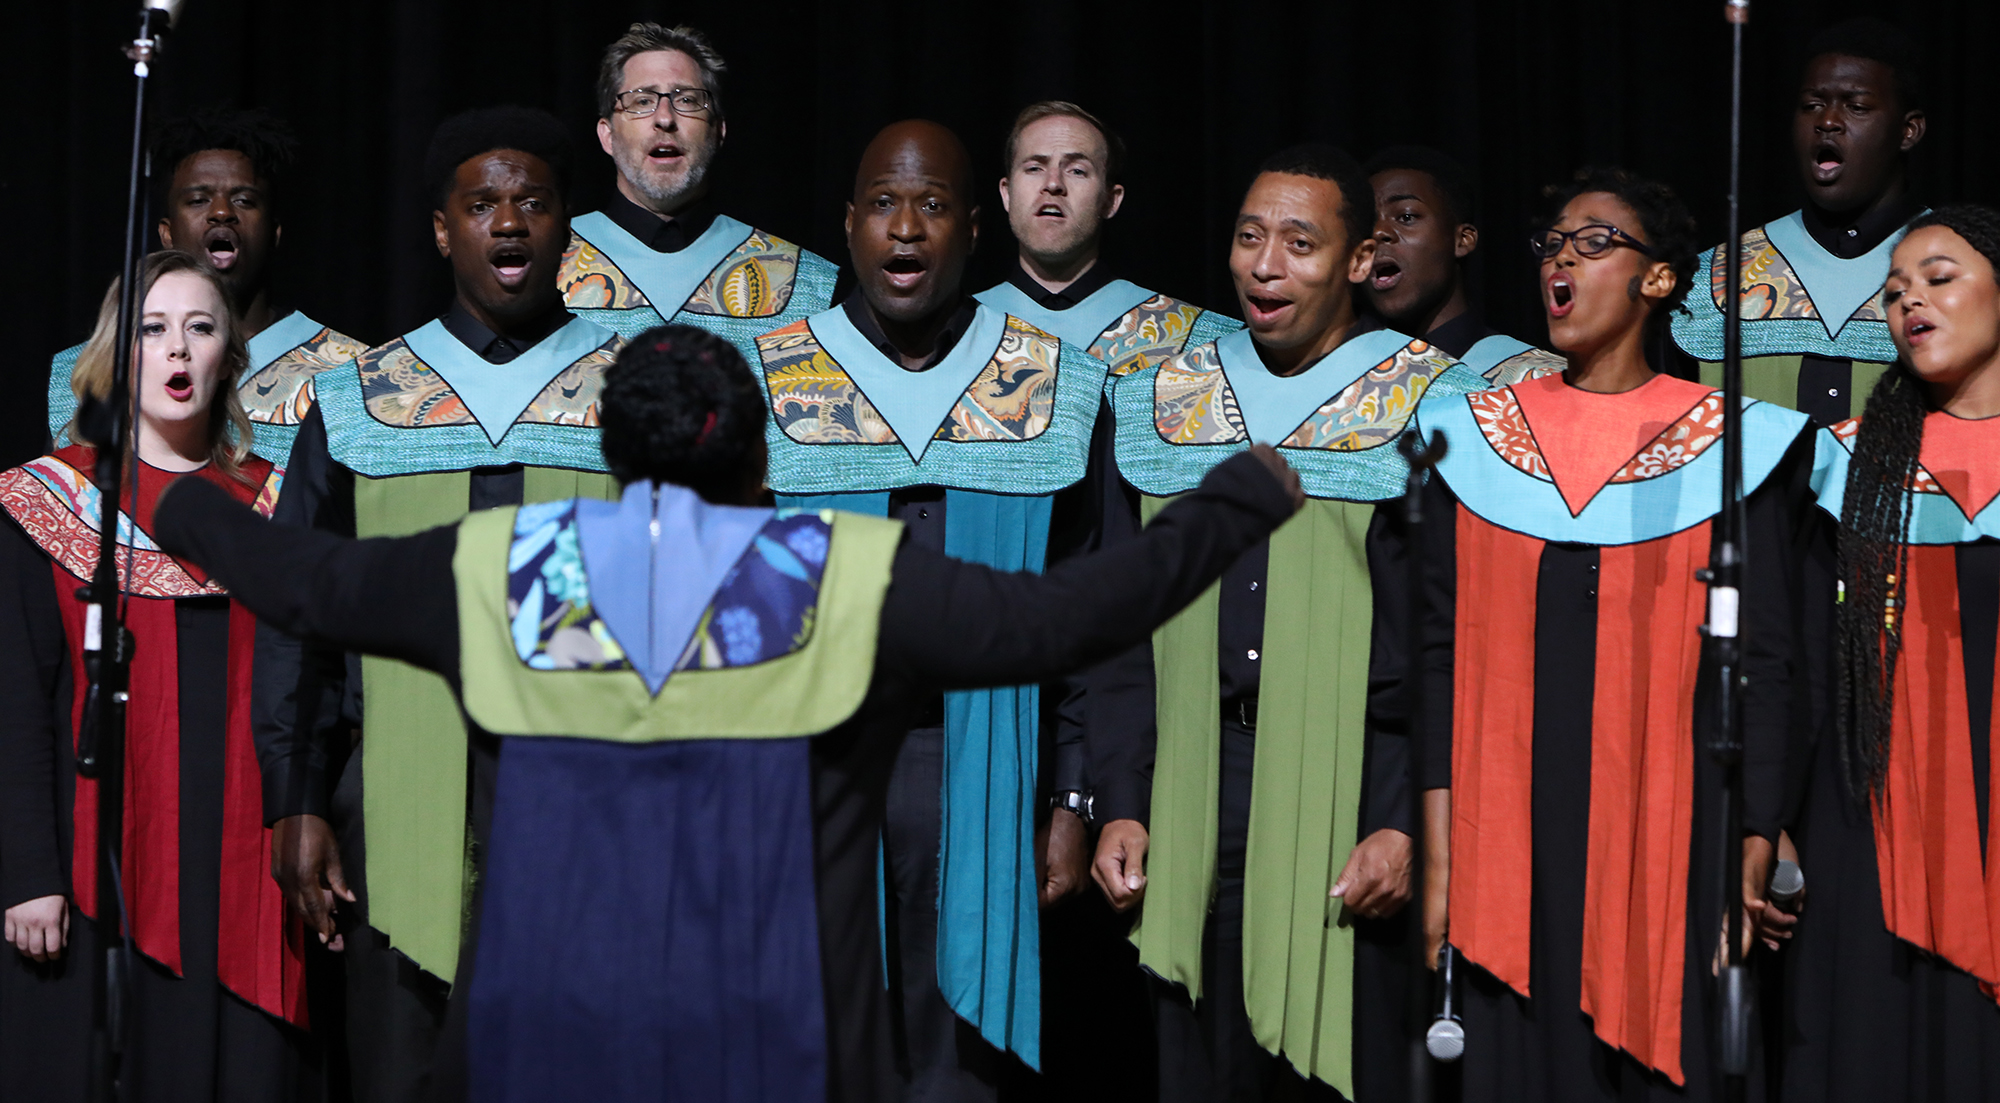 """The Debra Bonner Unity Gospel Choir, an independent LDS choir, performs """"Calvary"""" during the 109th NAACP Annual Convention at the Henry B. González Convention Center in San Antonio on Sunday, July 15, 2018."""